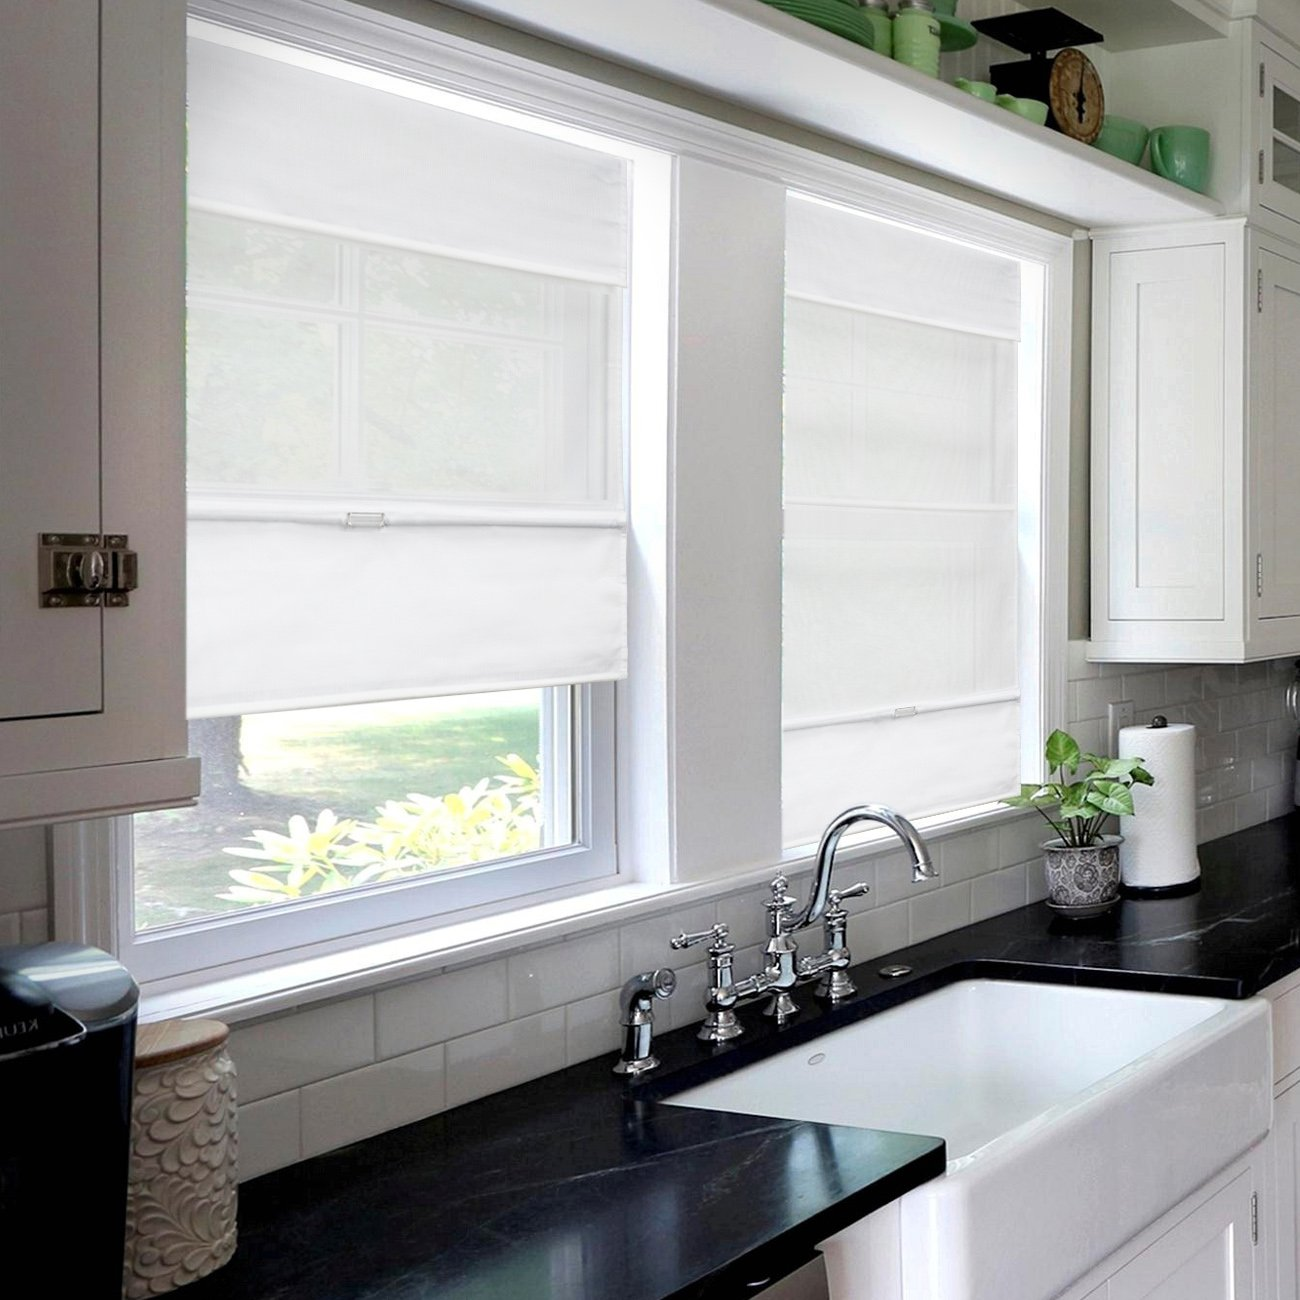 23 W X 64 H Chicology Cordless Magnetic Roman Shades Privacy Fabric Window Blind Light Filtering Daily Canvas Roman Shades Home Kitchen Swl13562 Nl